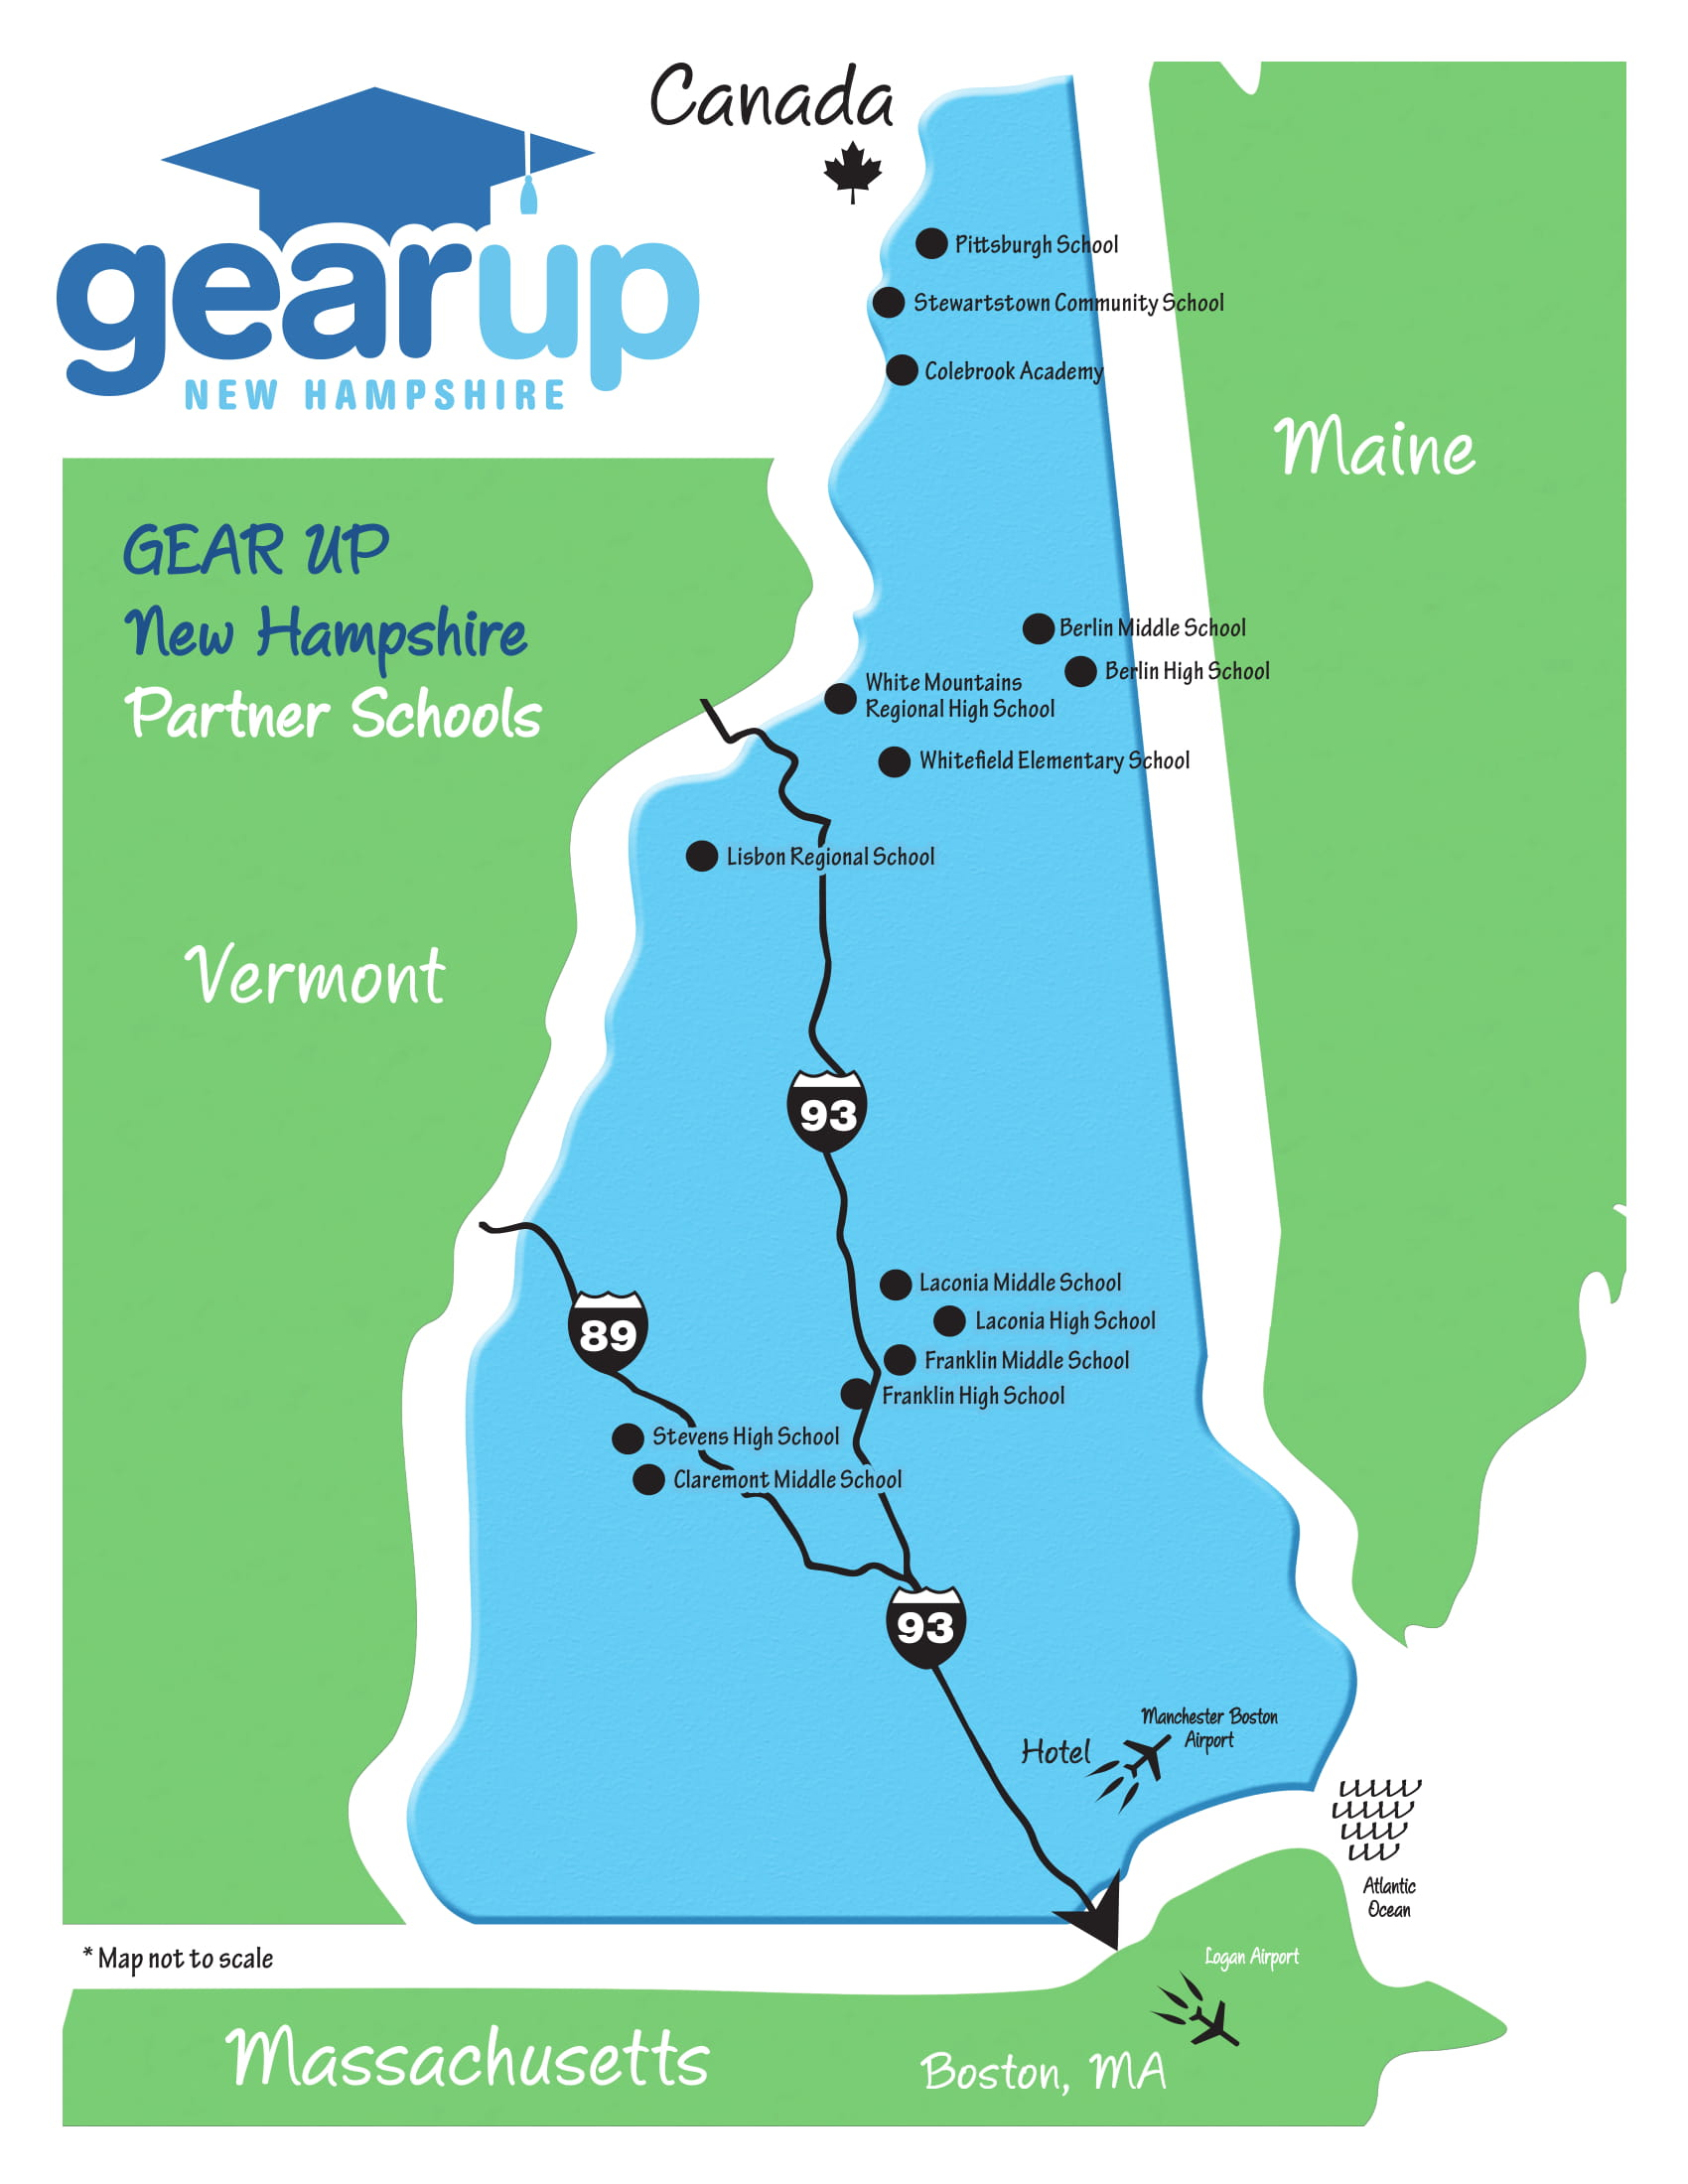 GEAR UP Cohort Schools Map